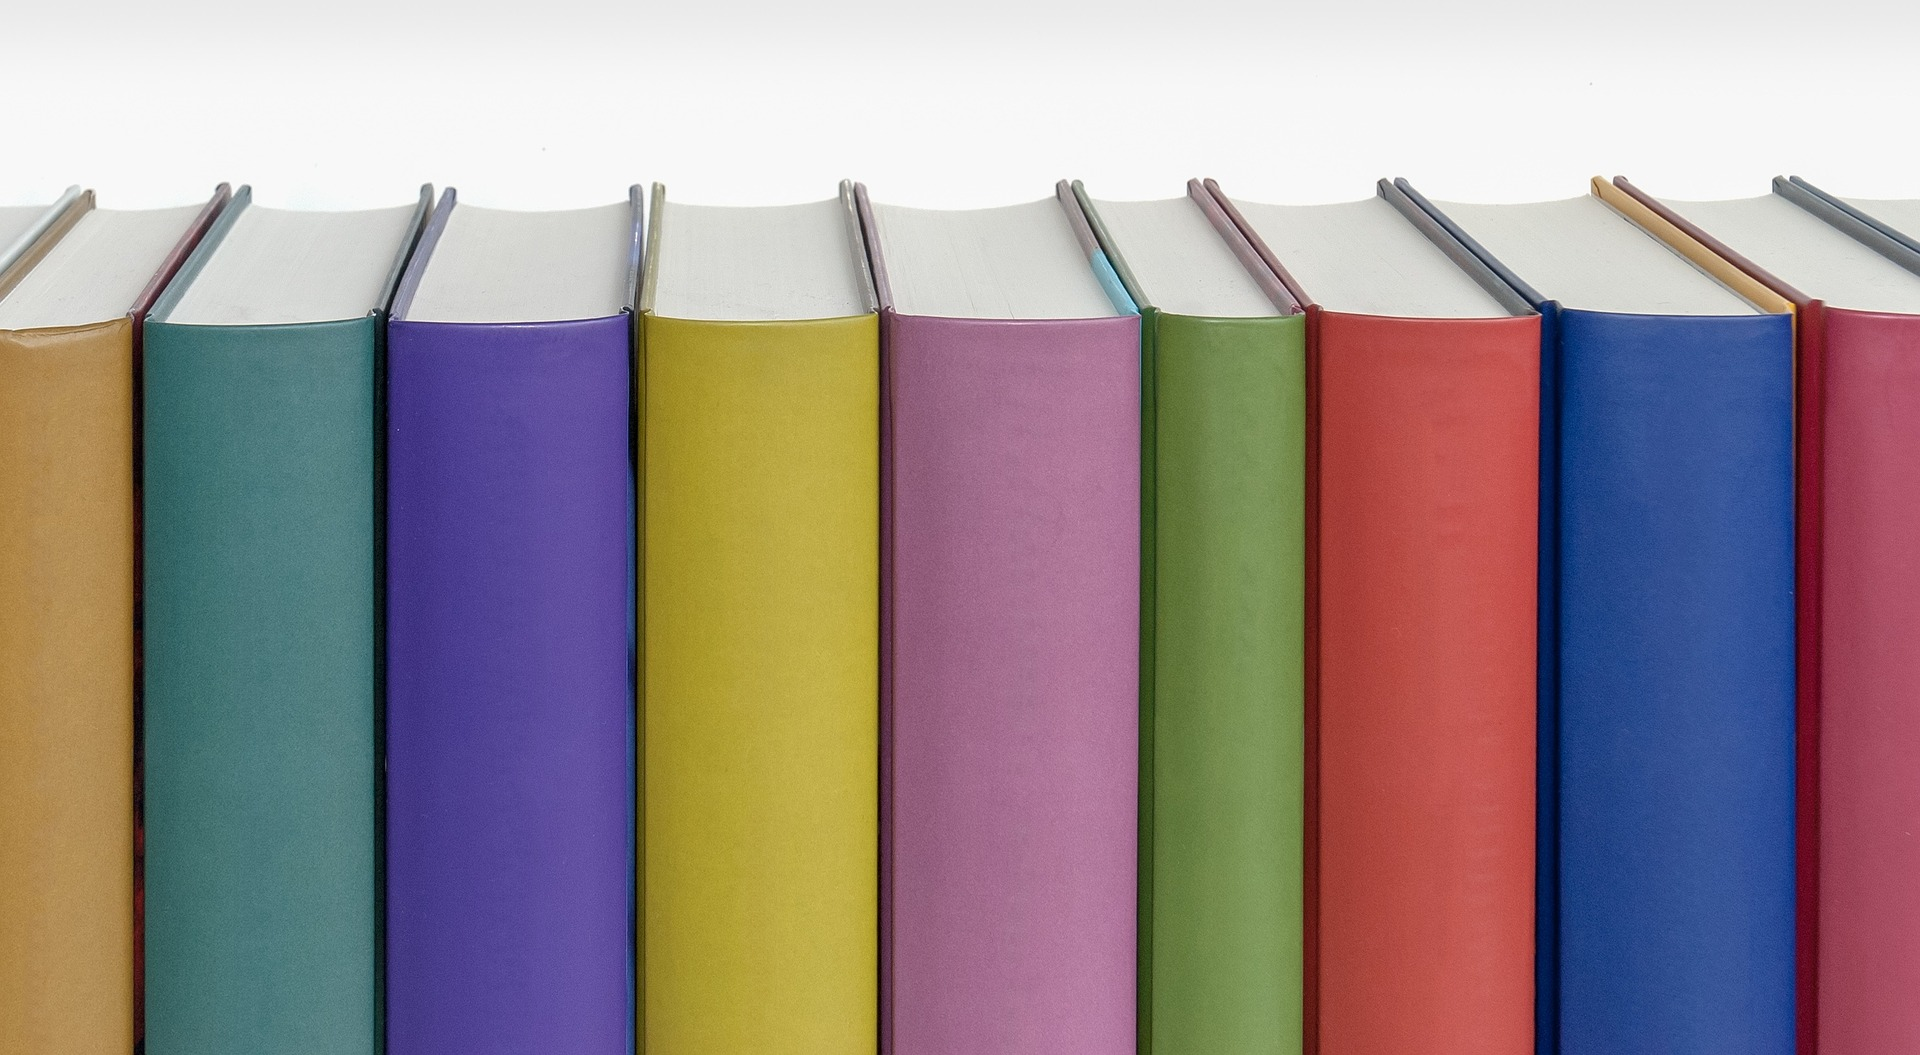 Stock image of books in multiple colors